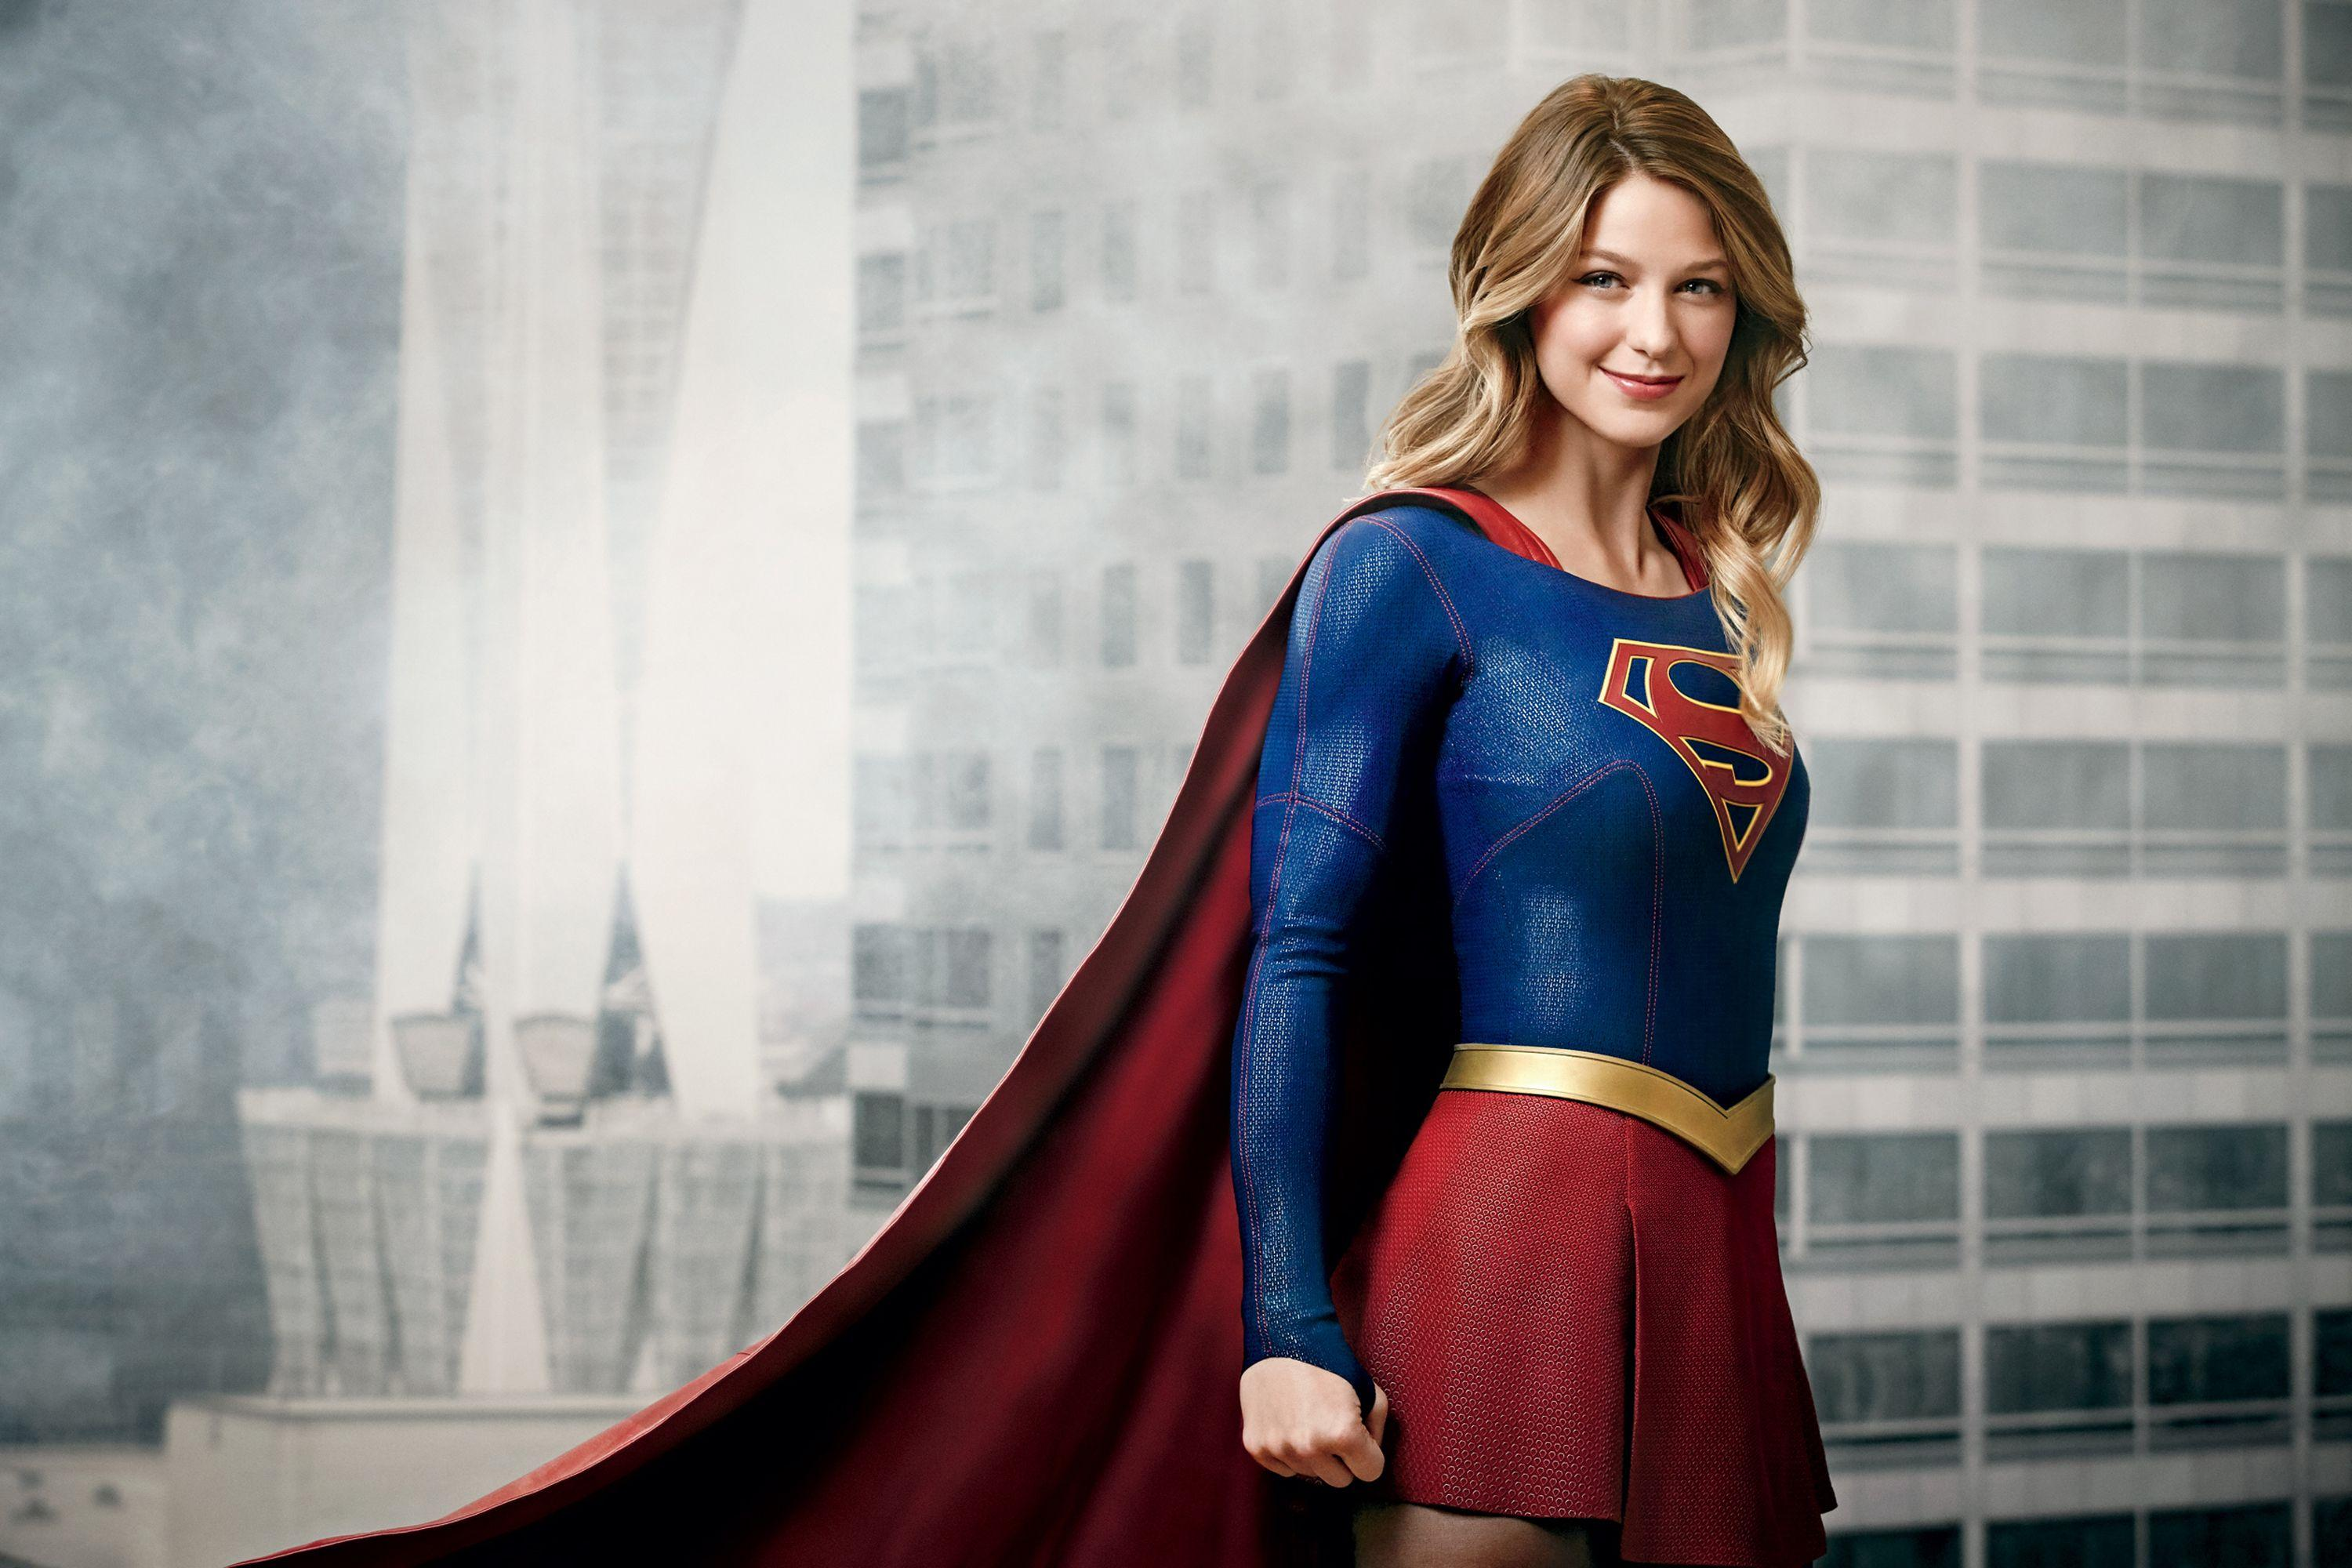 Supergirl Wallpapers – Supergirl